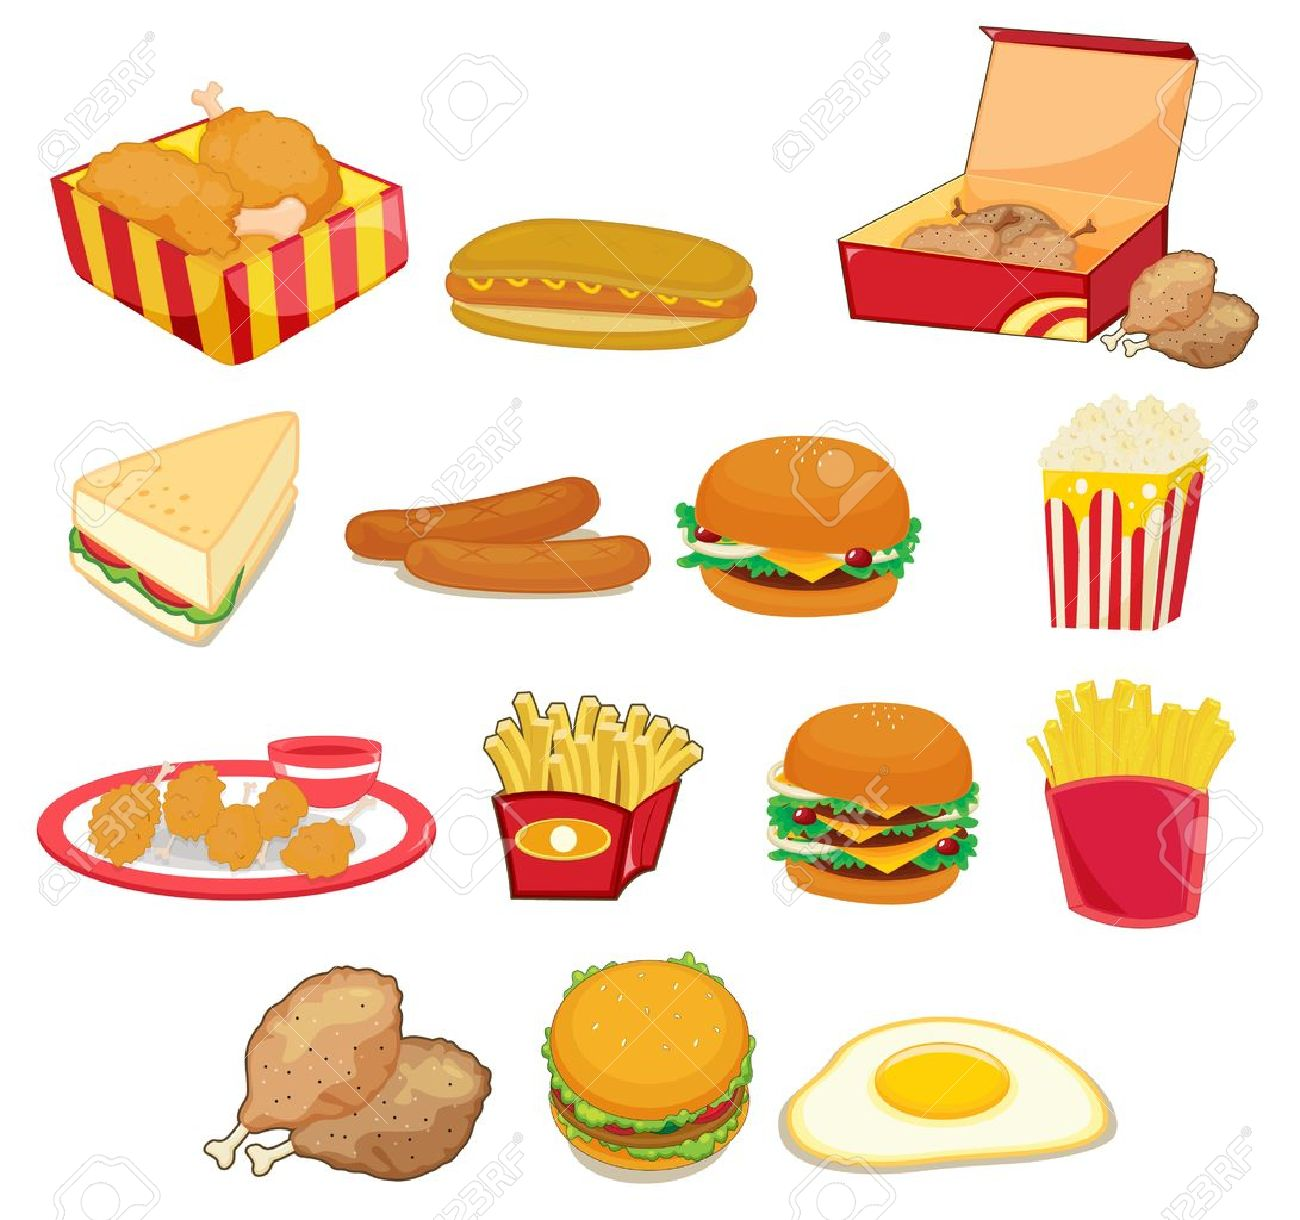 Illustration of junk food on w Stock Vector - 13190156